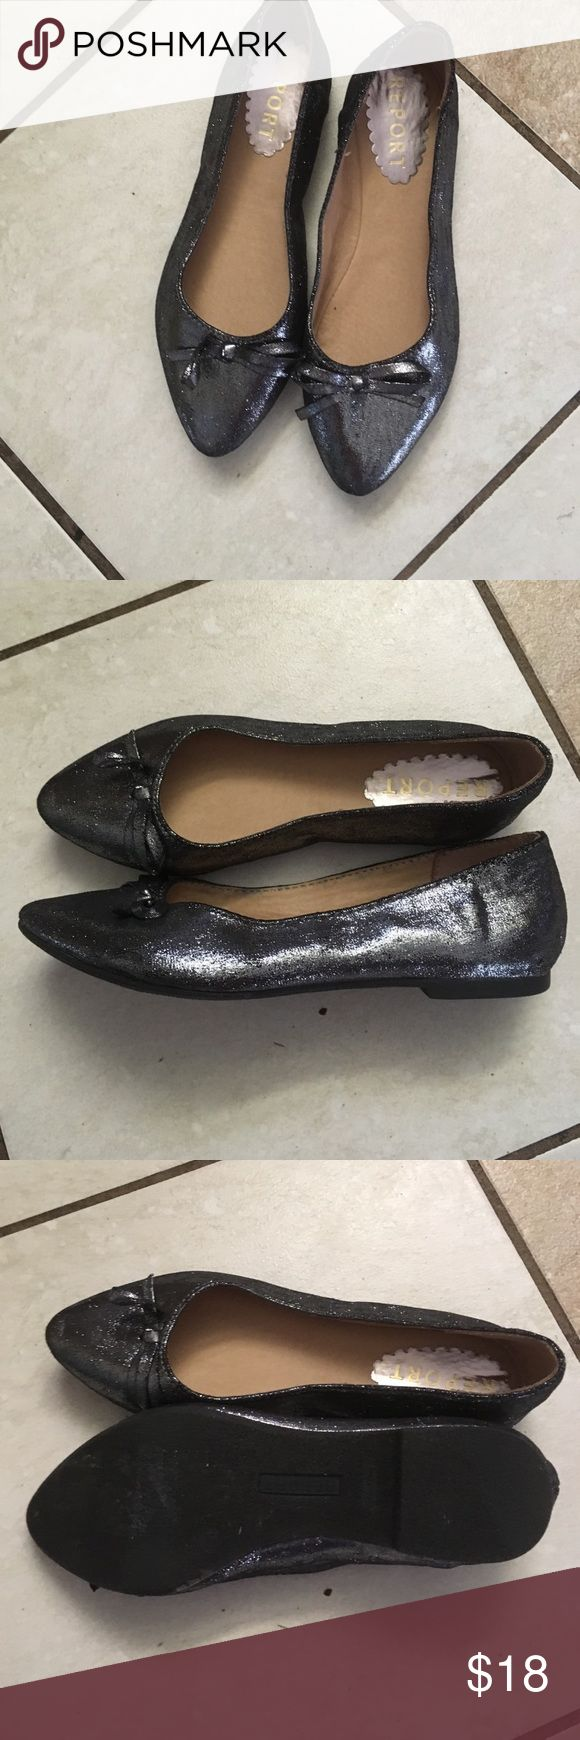 Report flats Cute flats in great condition Report Shoes Flats & Loafers